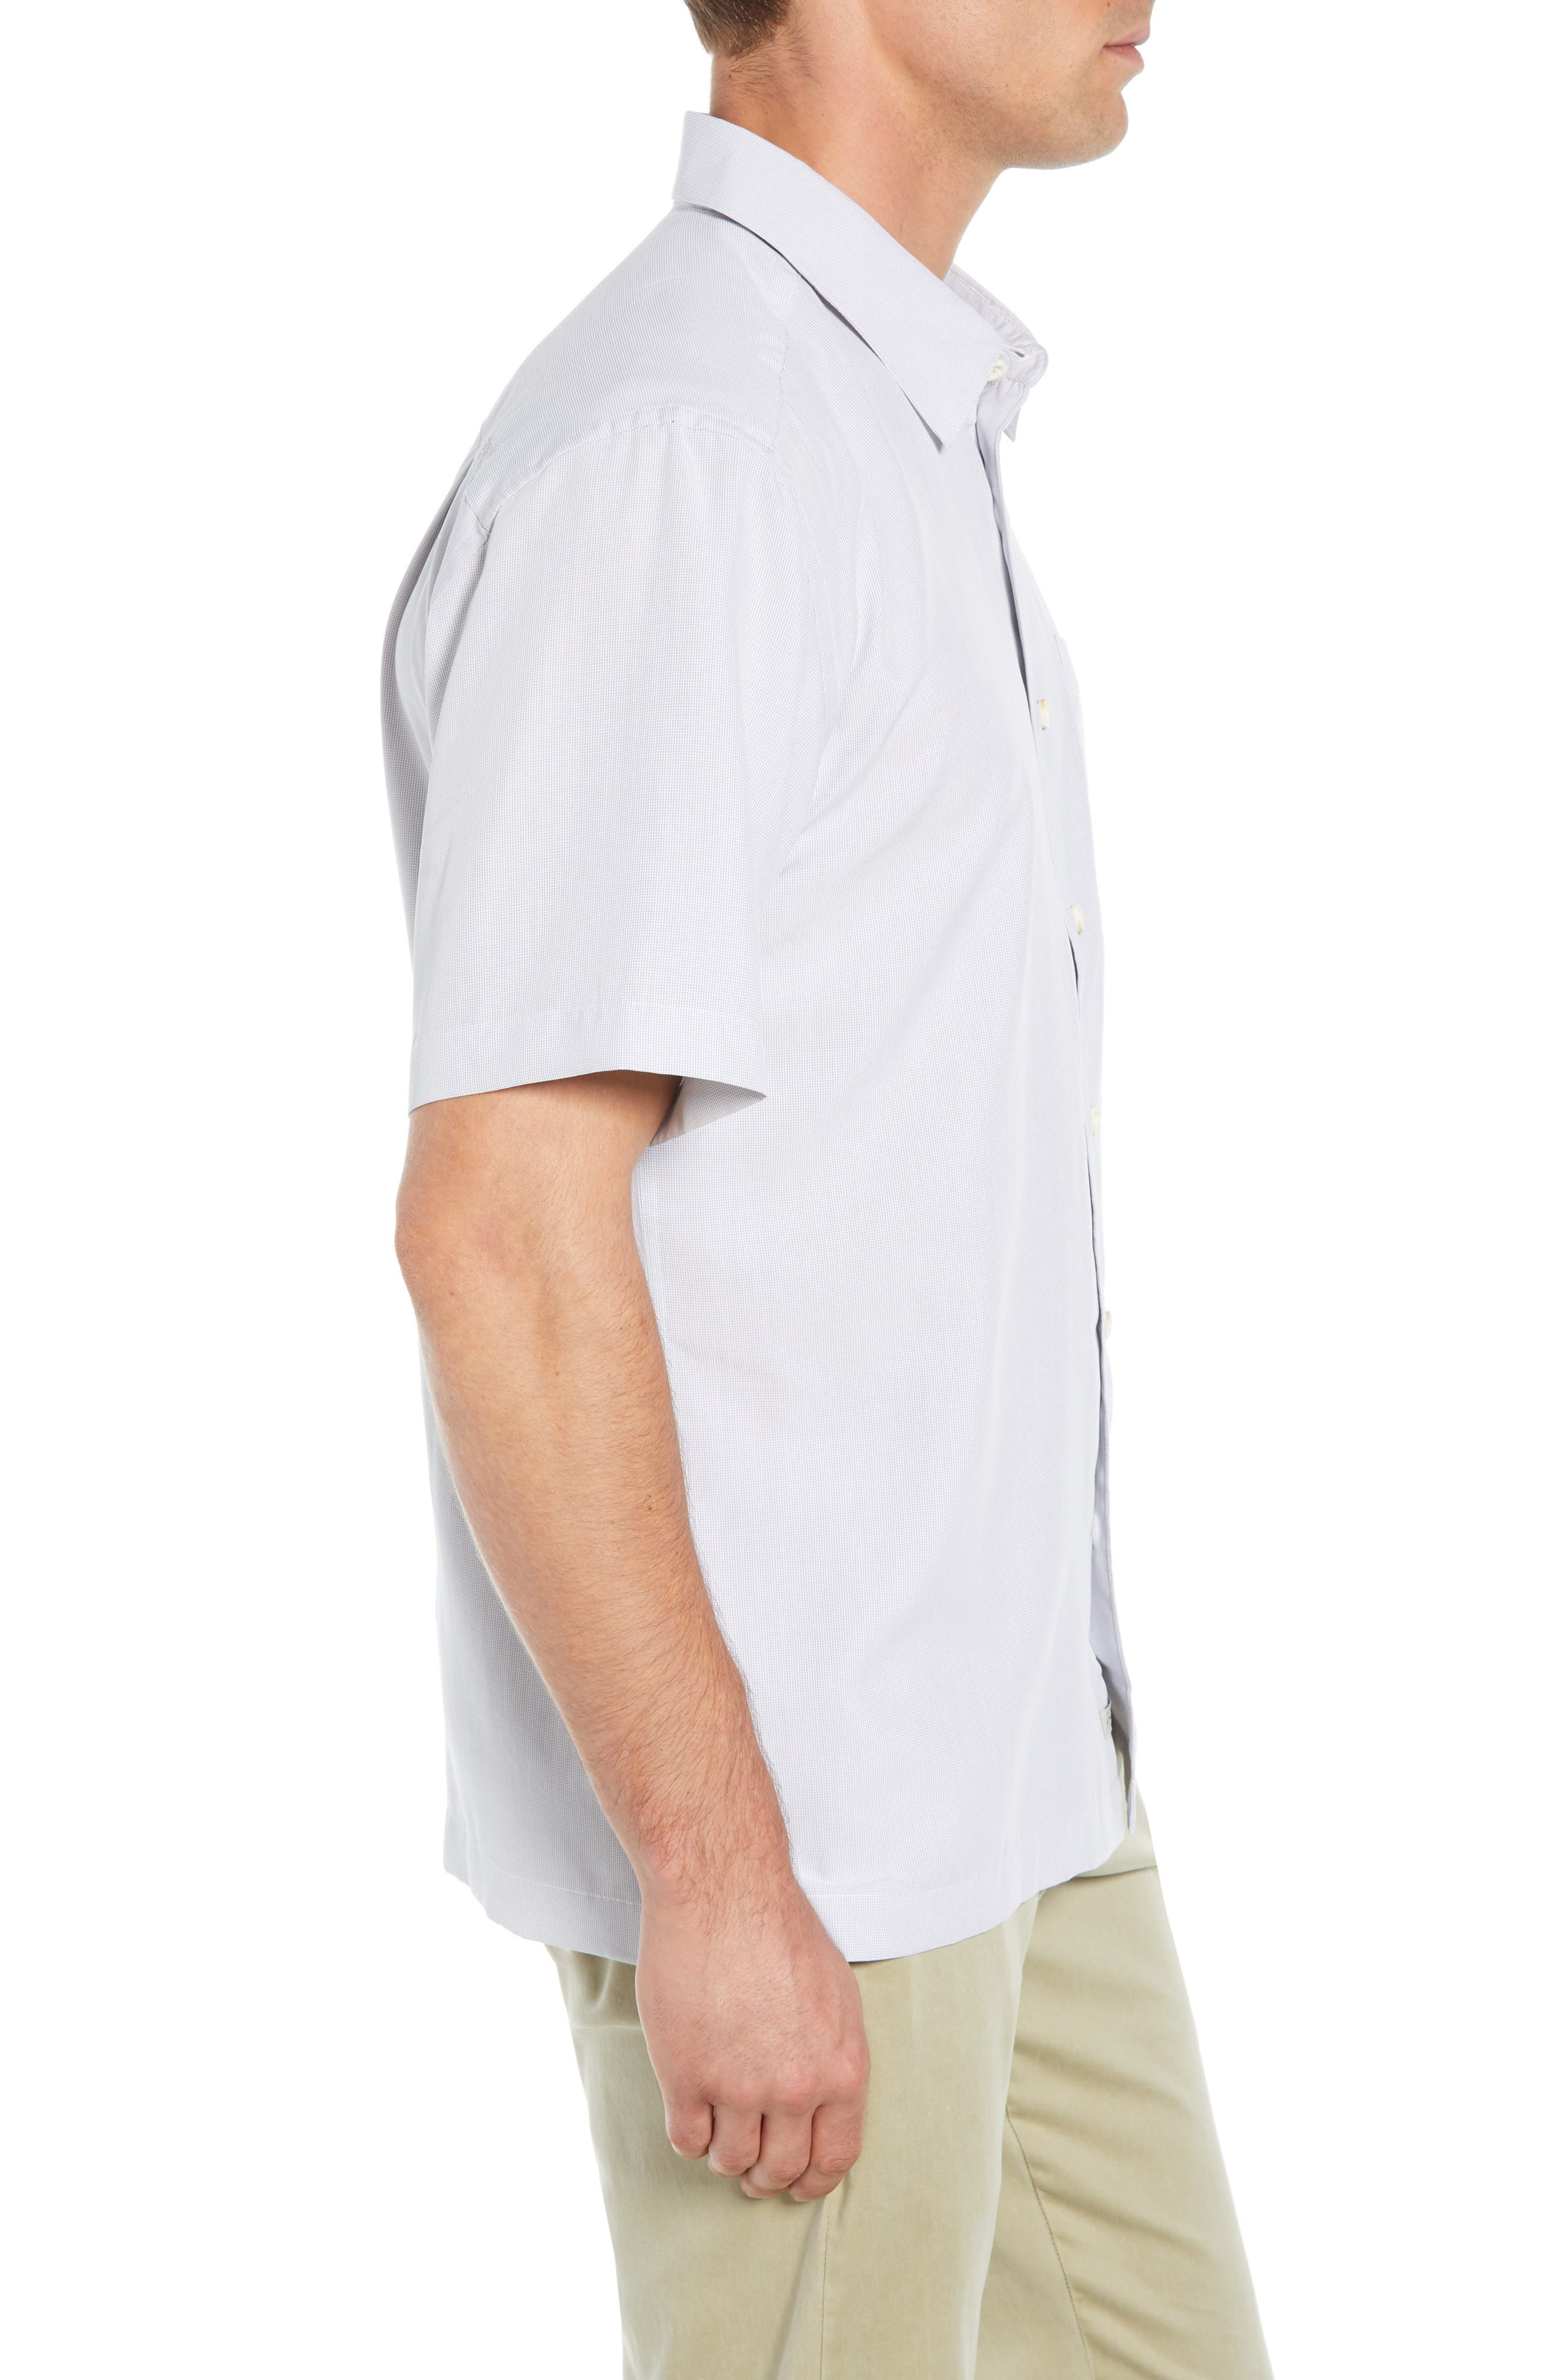 Cane Island Classic Fit Camp Shirt,                             Alternate thumbnail 4, color,                             101